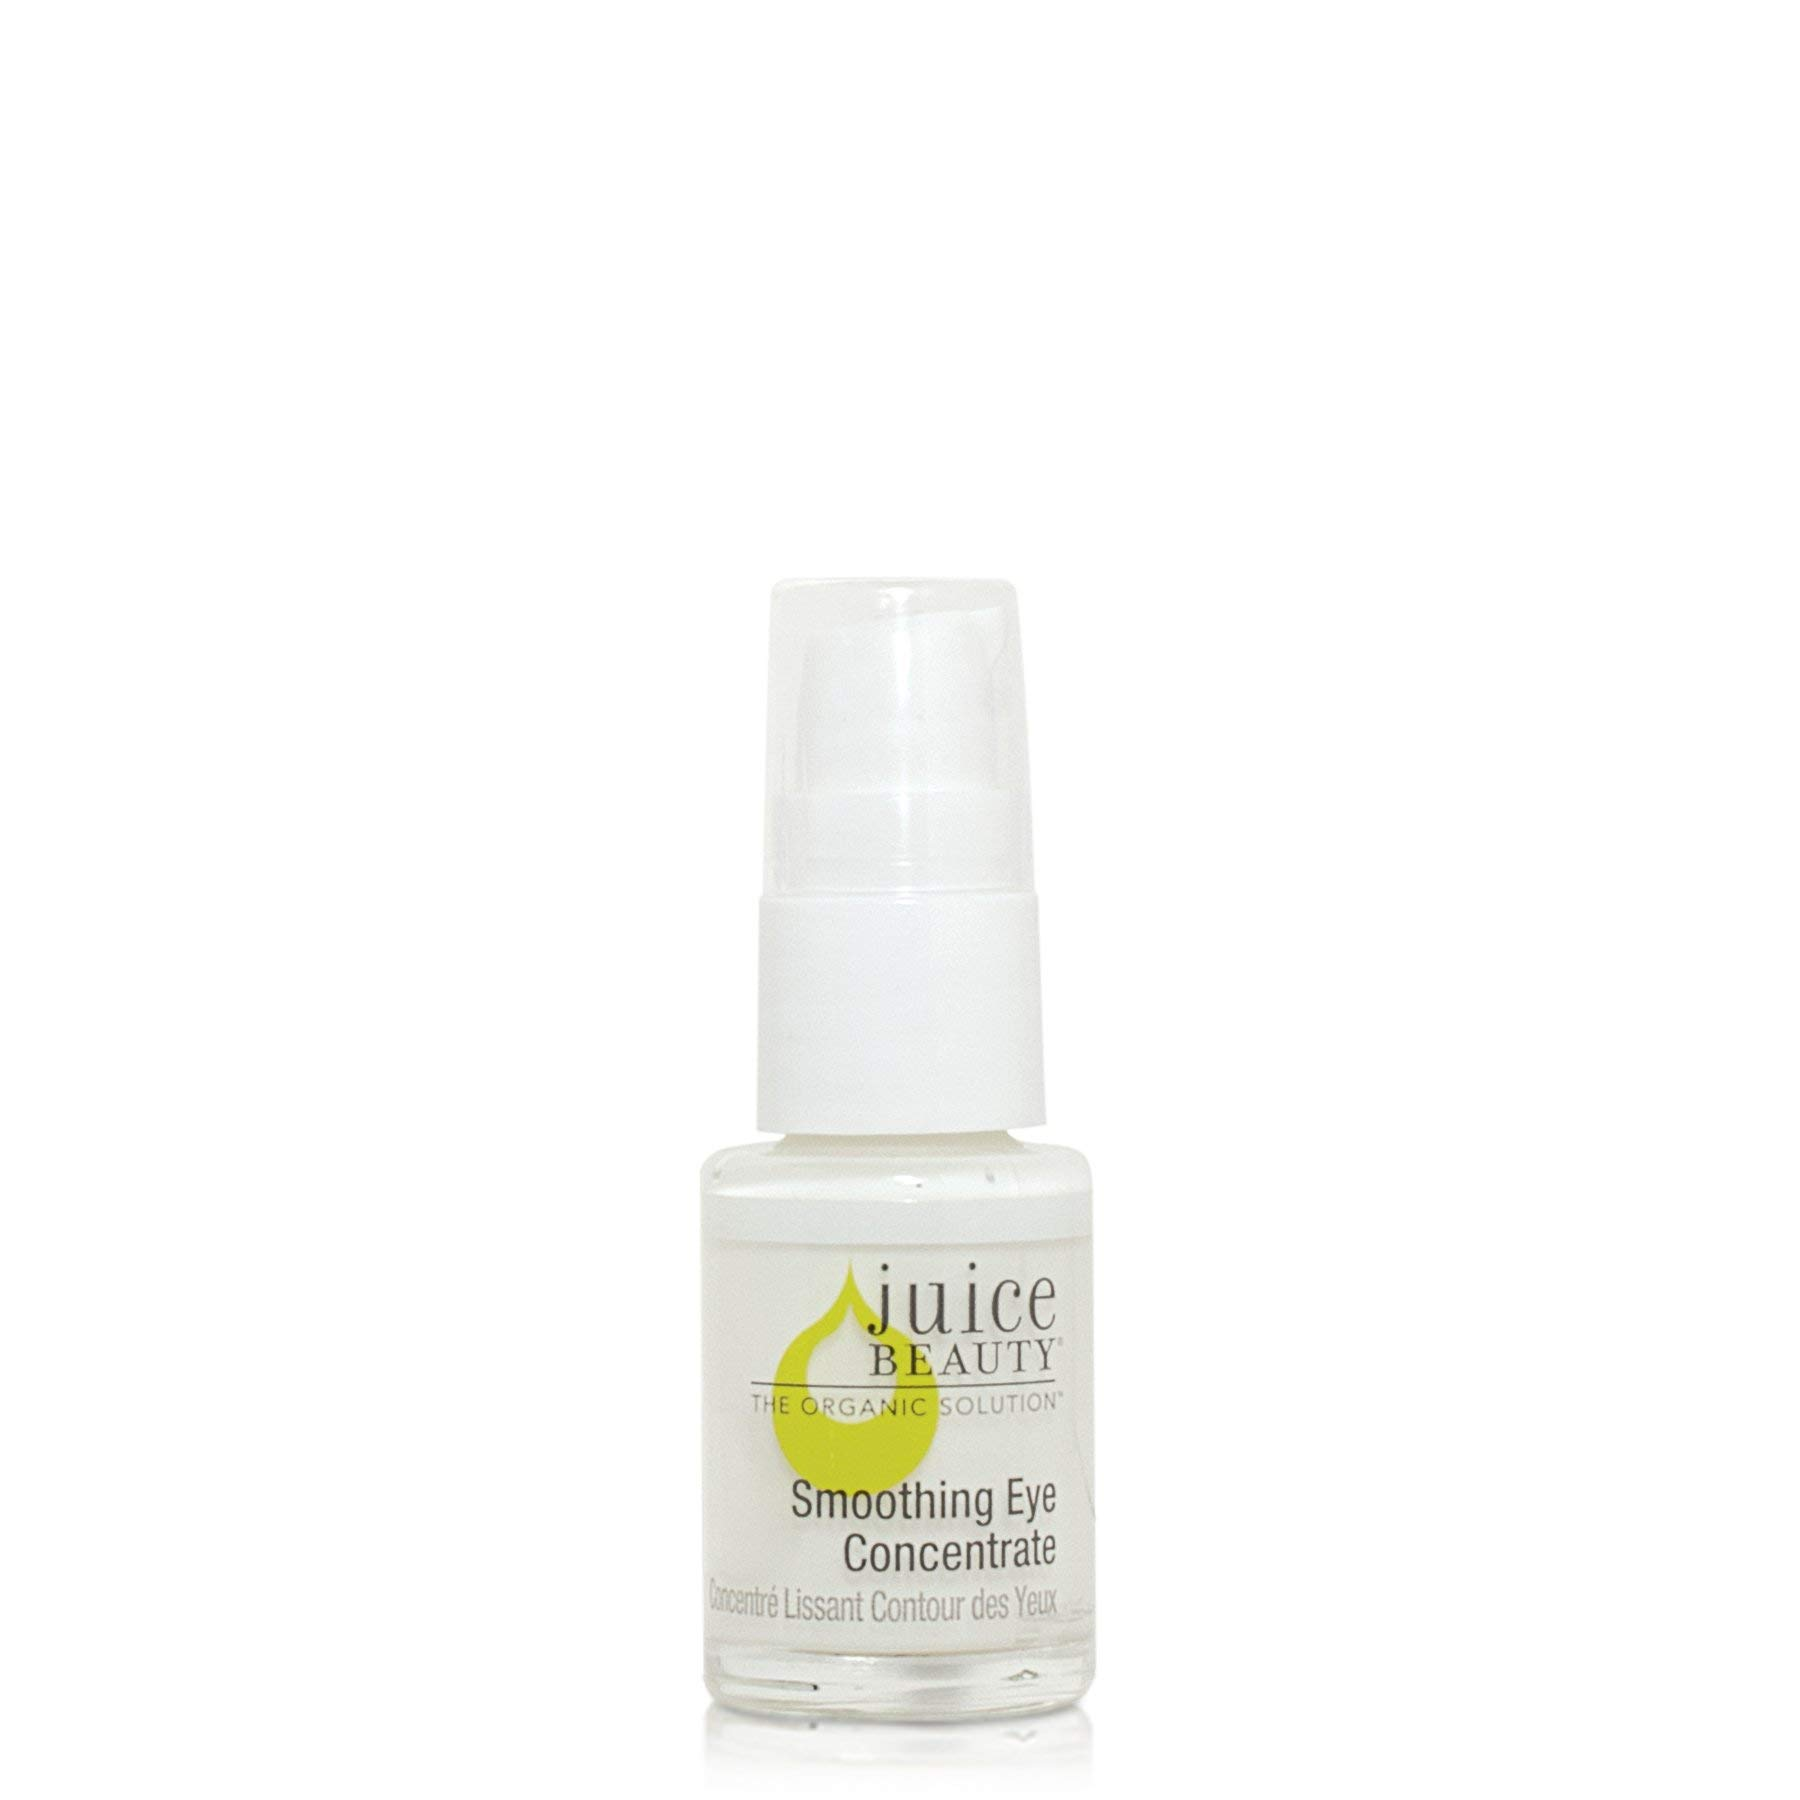 Juice Beauty Smoothing Eye Concentrate, 0.5 fl. oz. by Juice Beauty